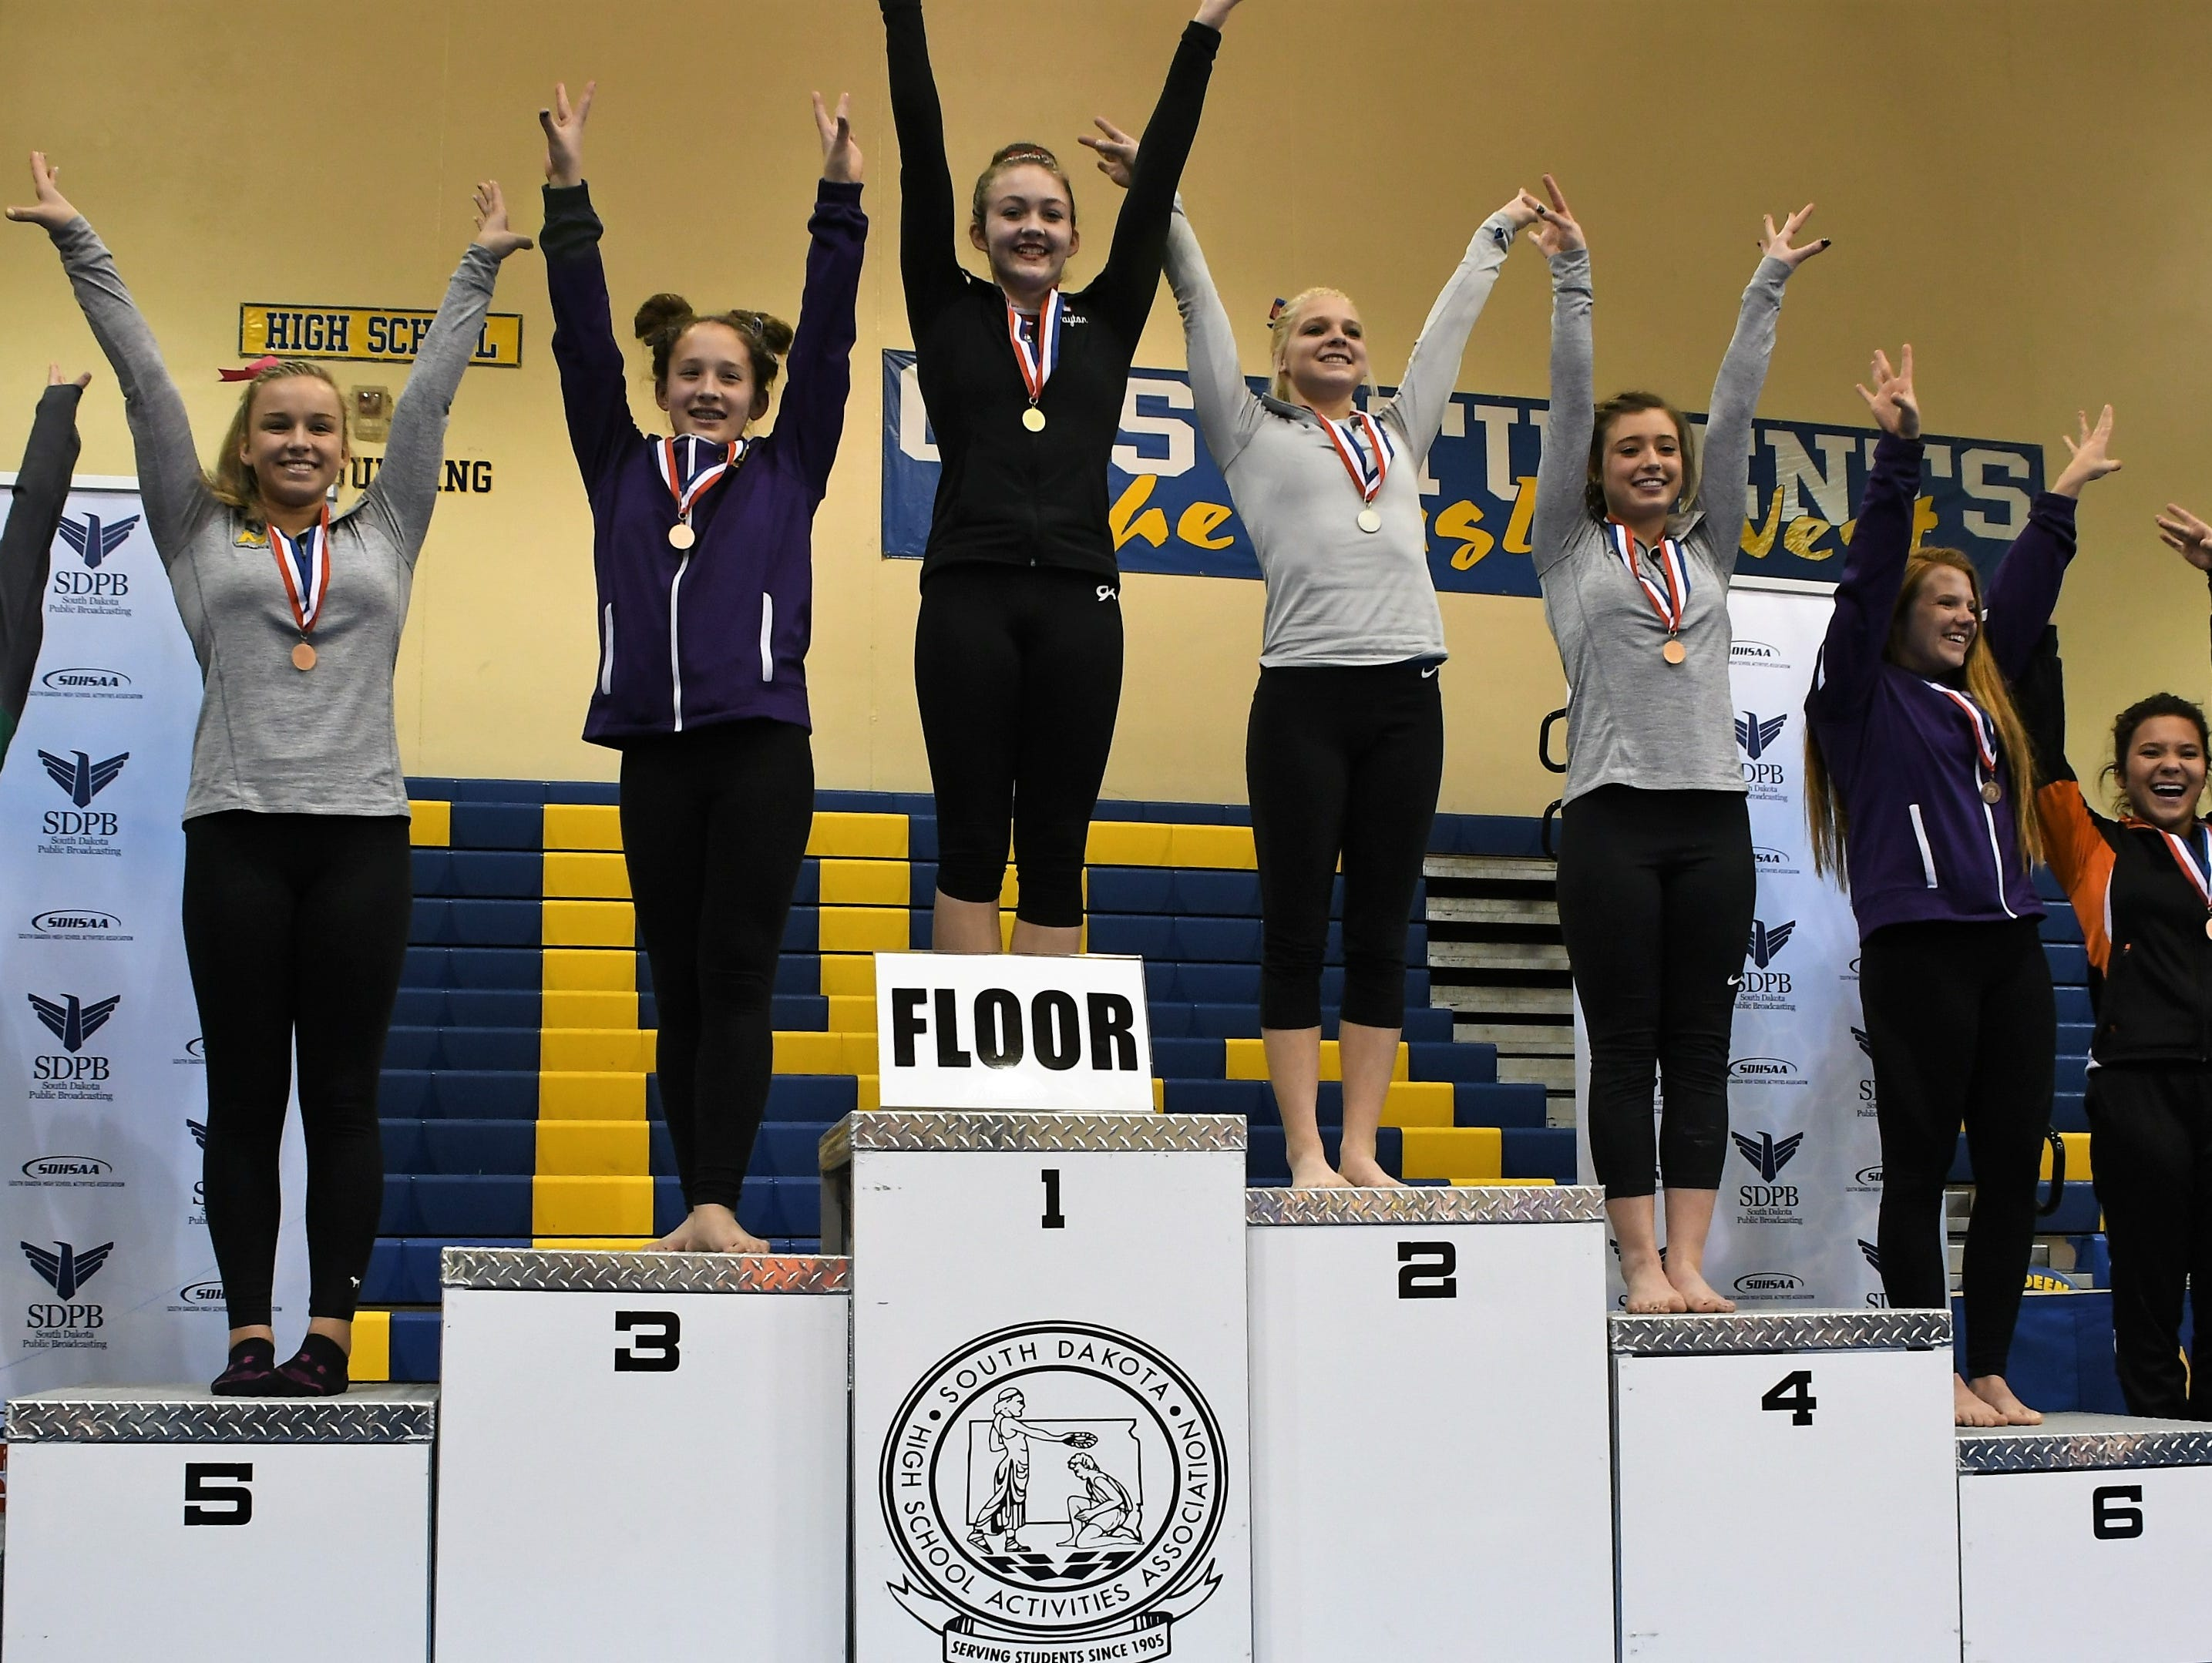 Top 8 finishers on floor exercise.